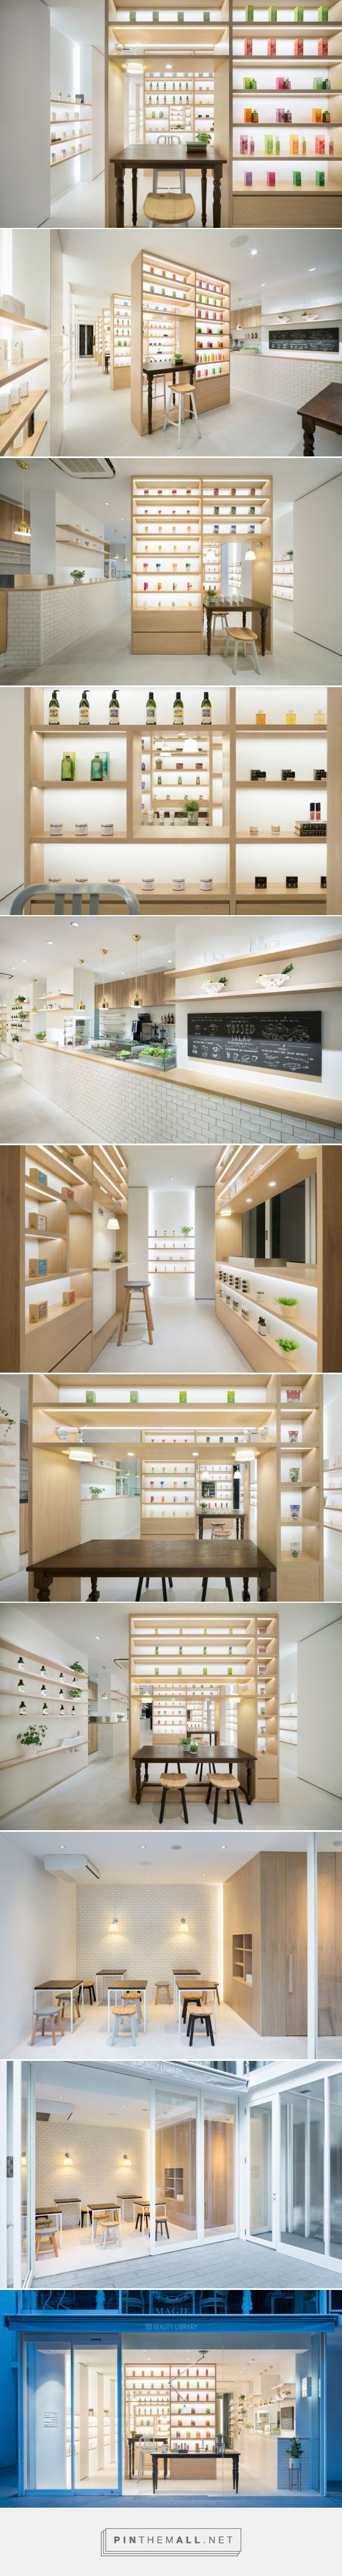 nendo designed cosmetics store in tokyo incorporates self study beauty areas - created via http://pinthemall.net